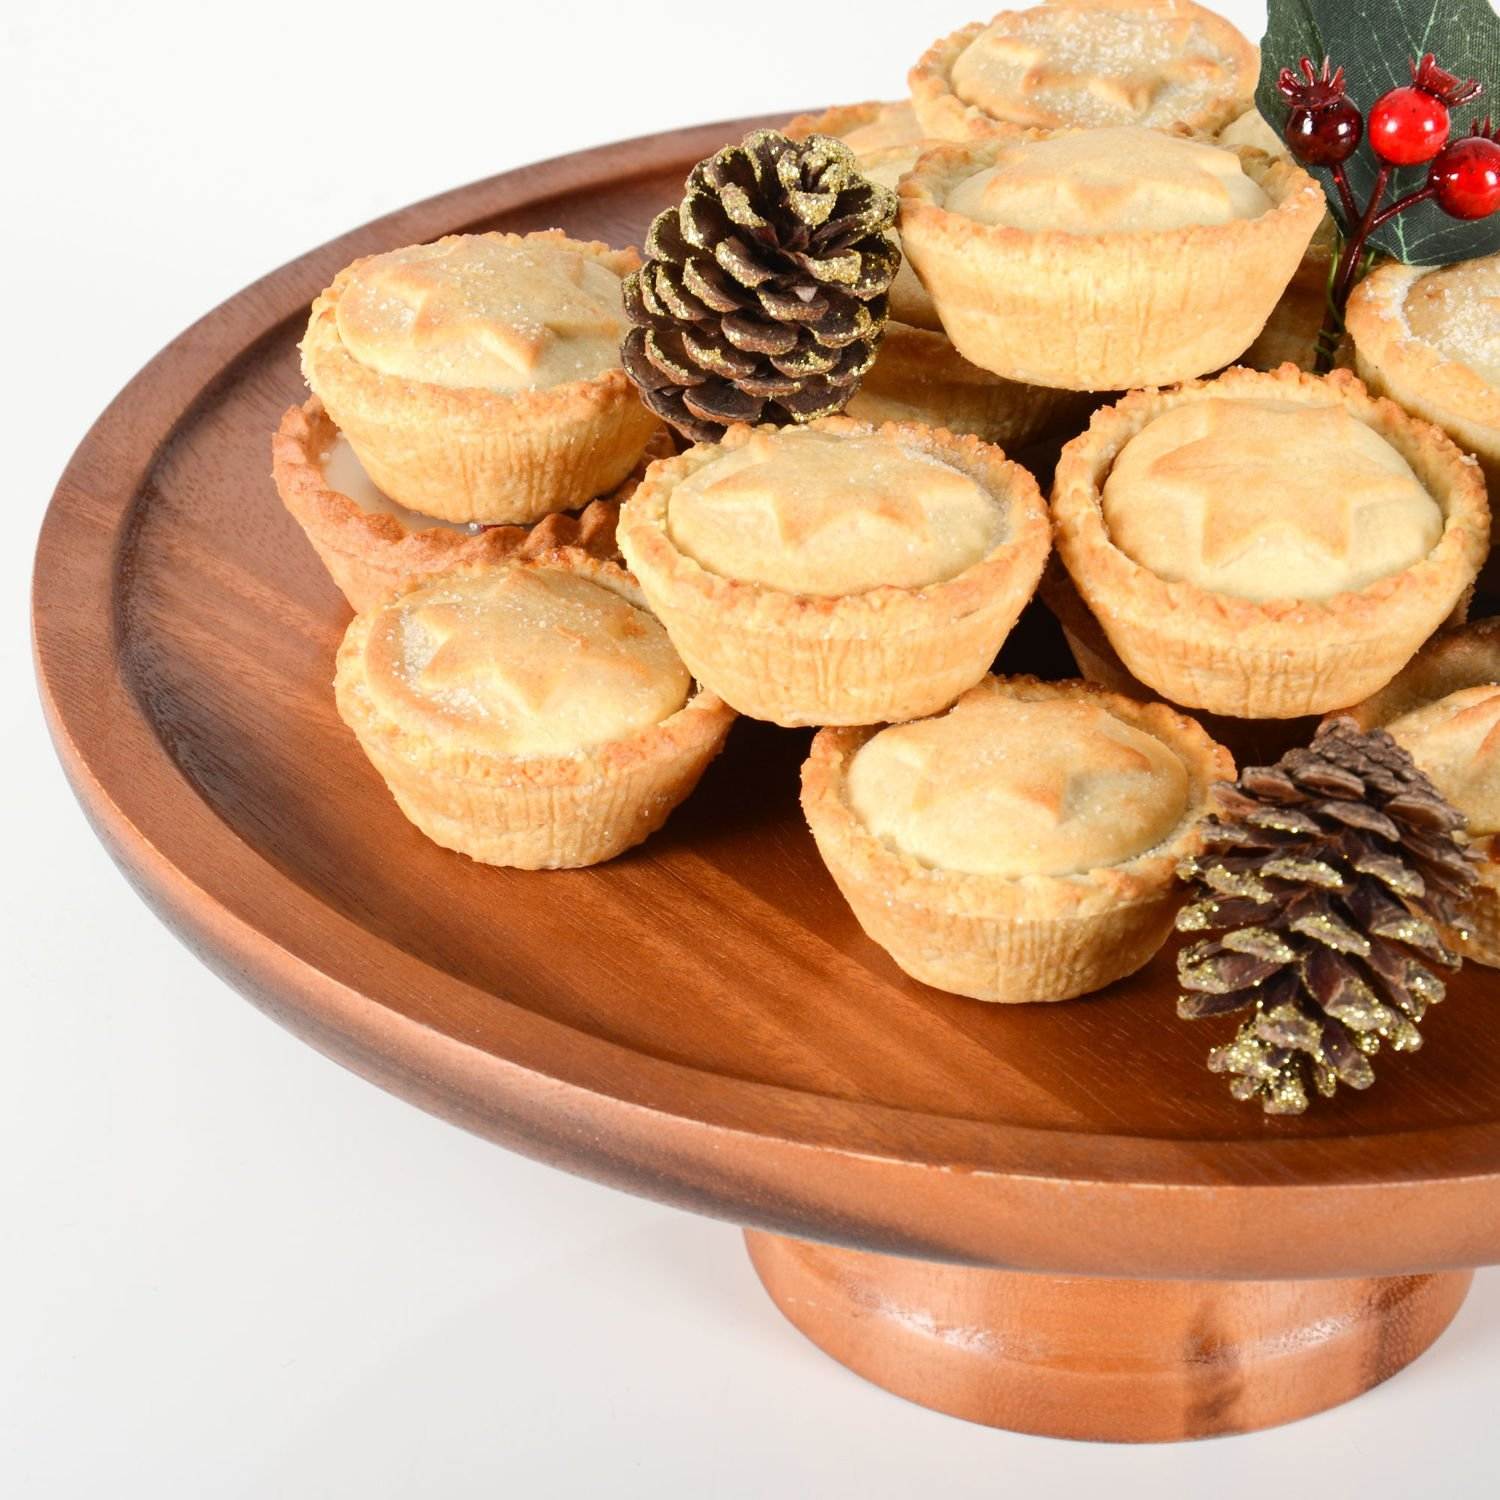 Amazon.com: Acacia Wood Cake Stand 33cm - Rustic Wooden Food Stand ...